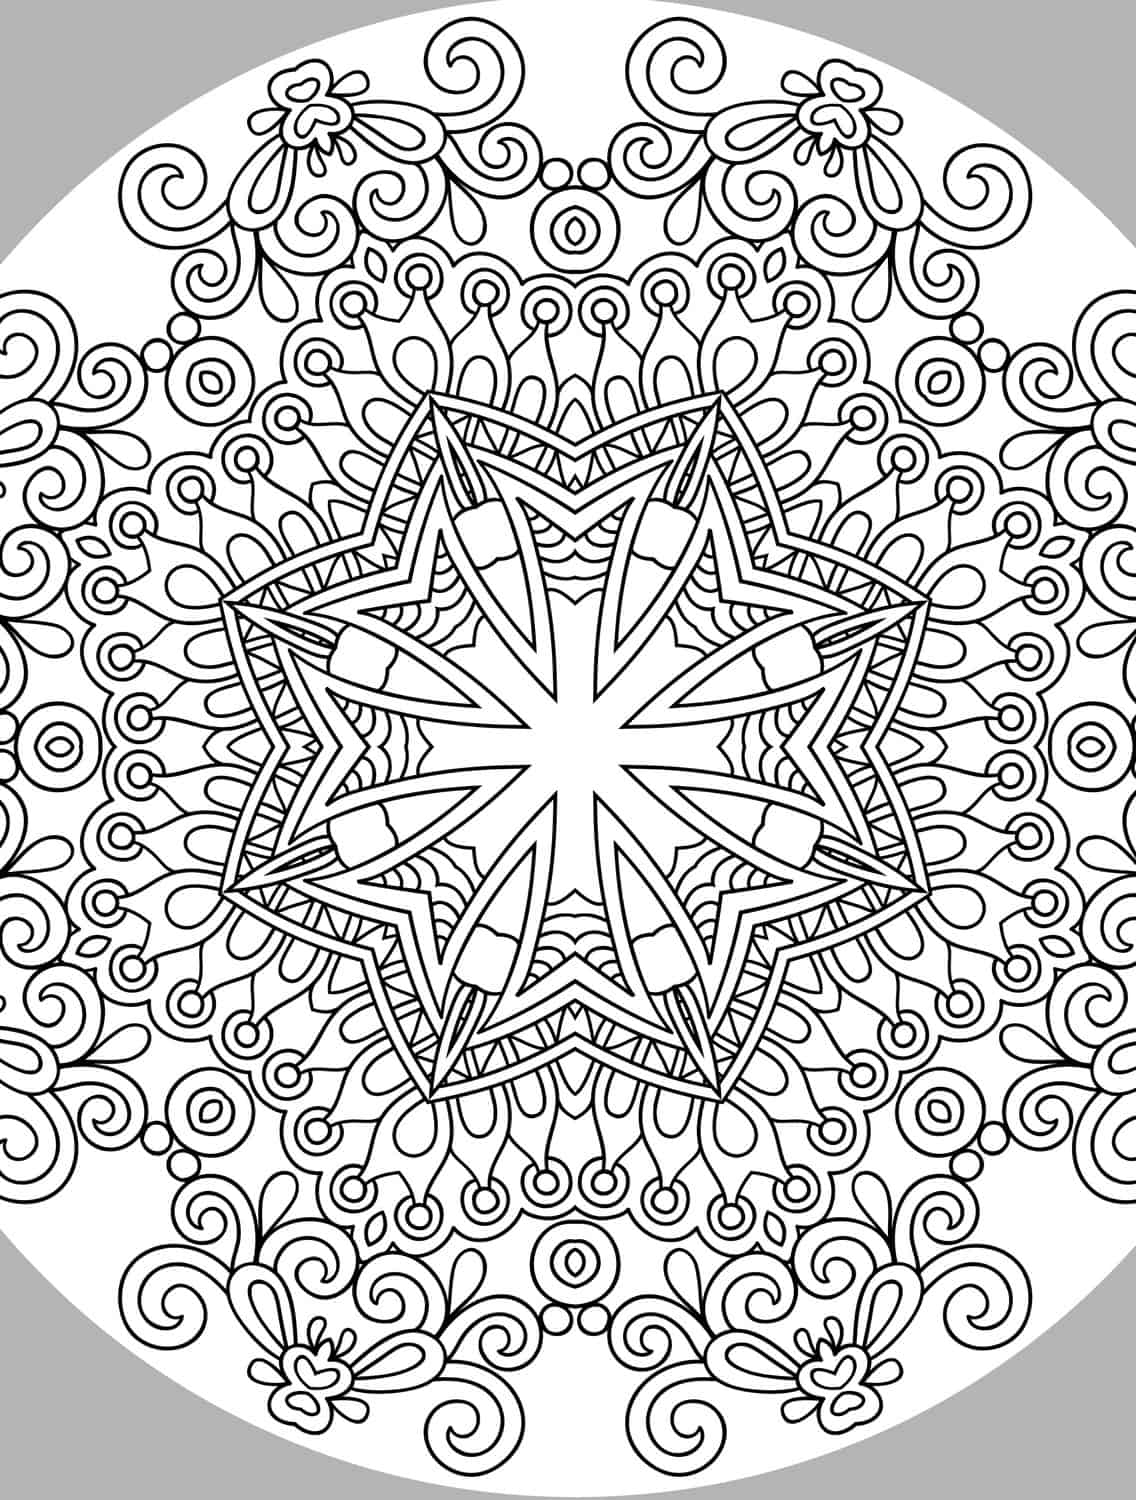 Stress relief coloring sheets free - Very Pretty Coloring Page For Adults Small